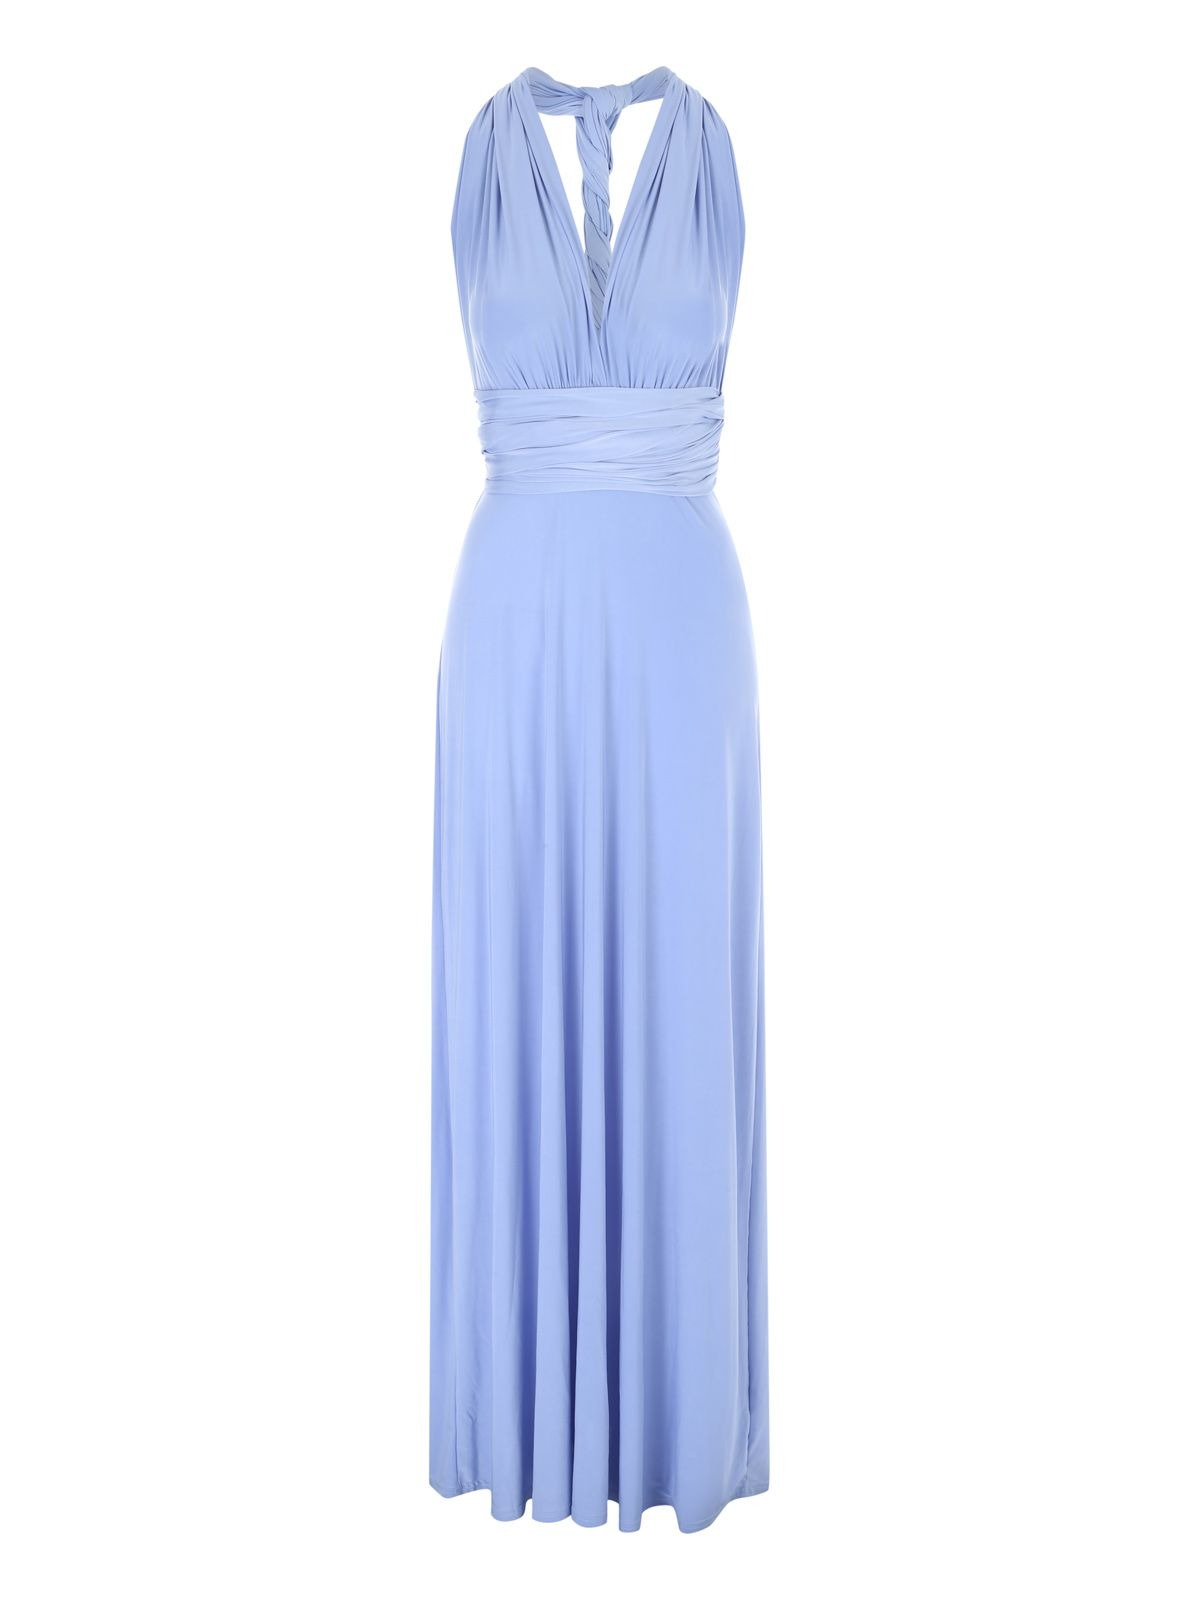 Jane Norman Multiway Maxi Dress, Blue